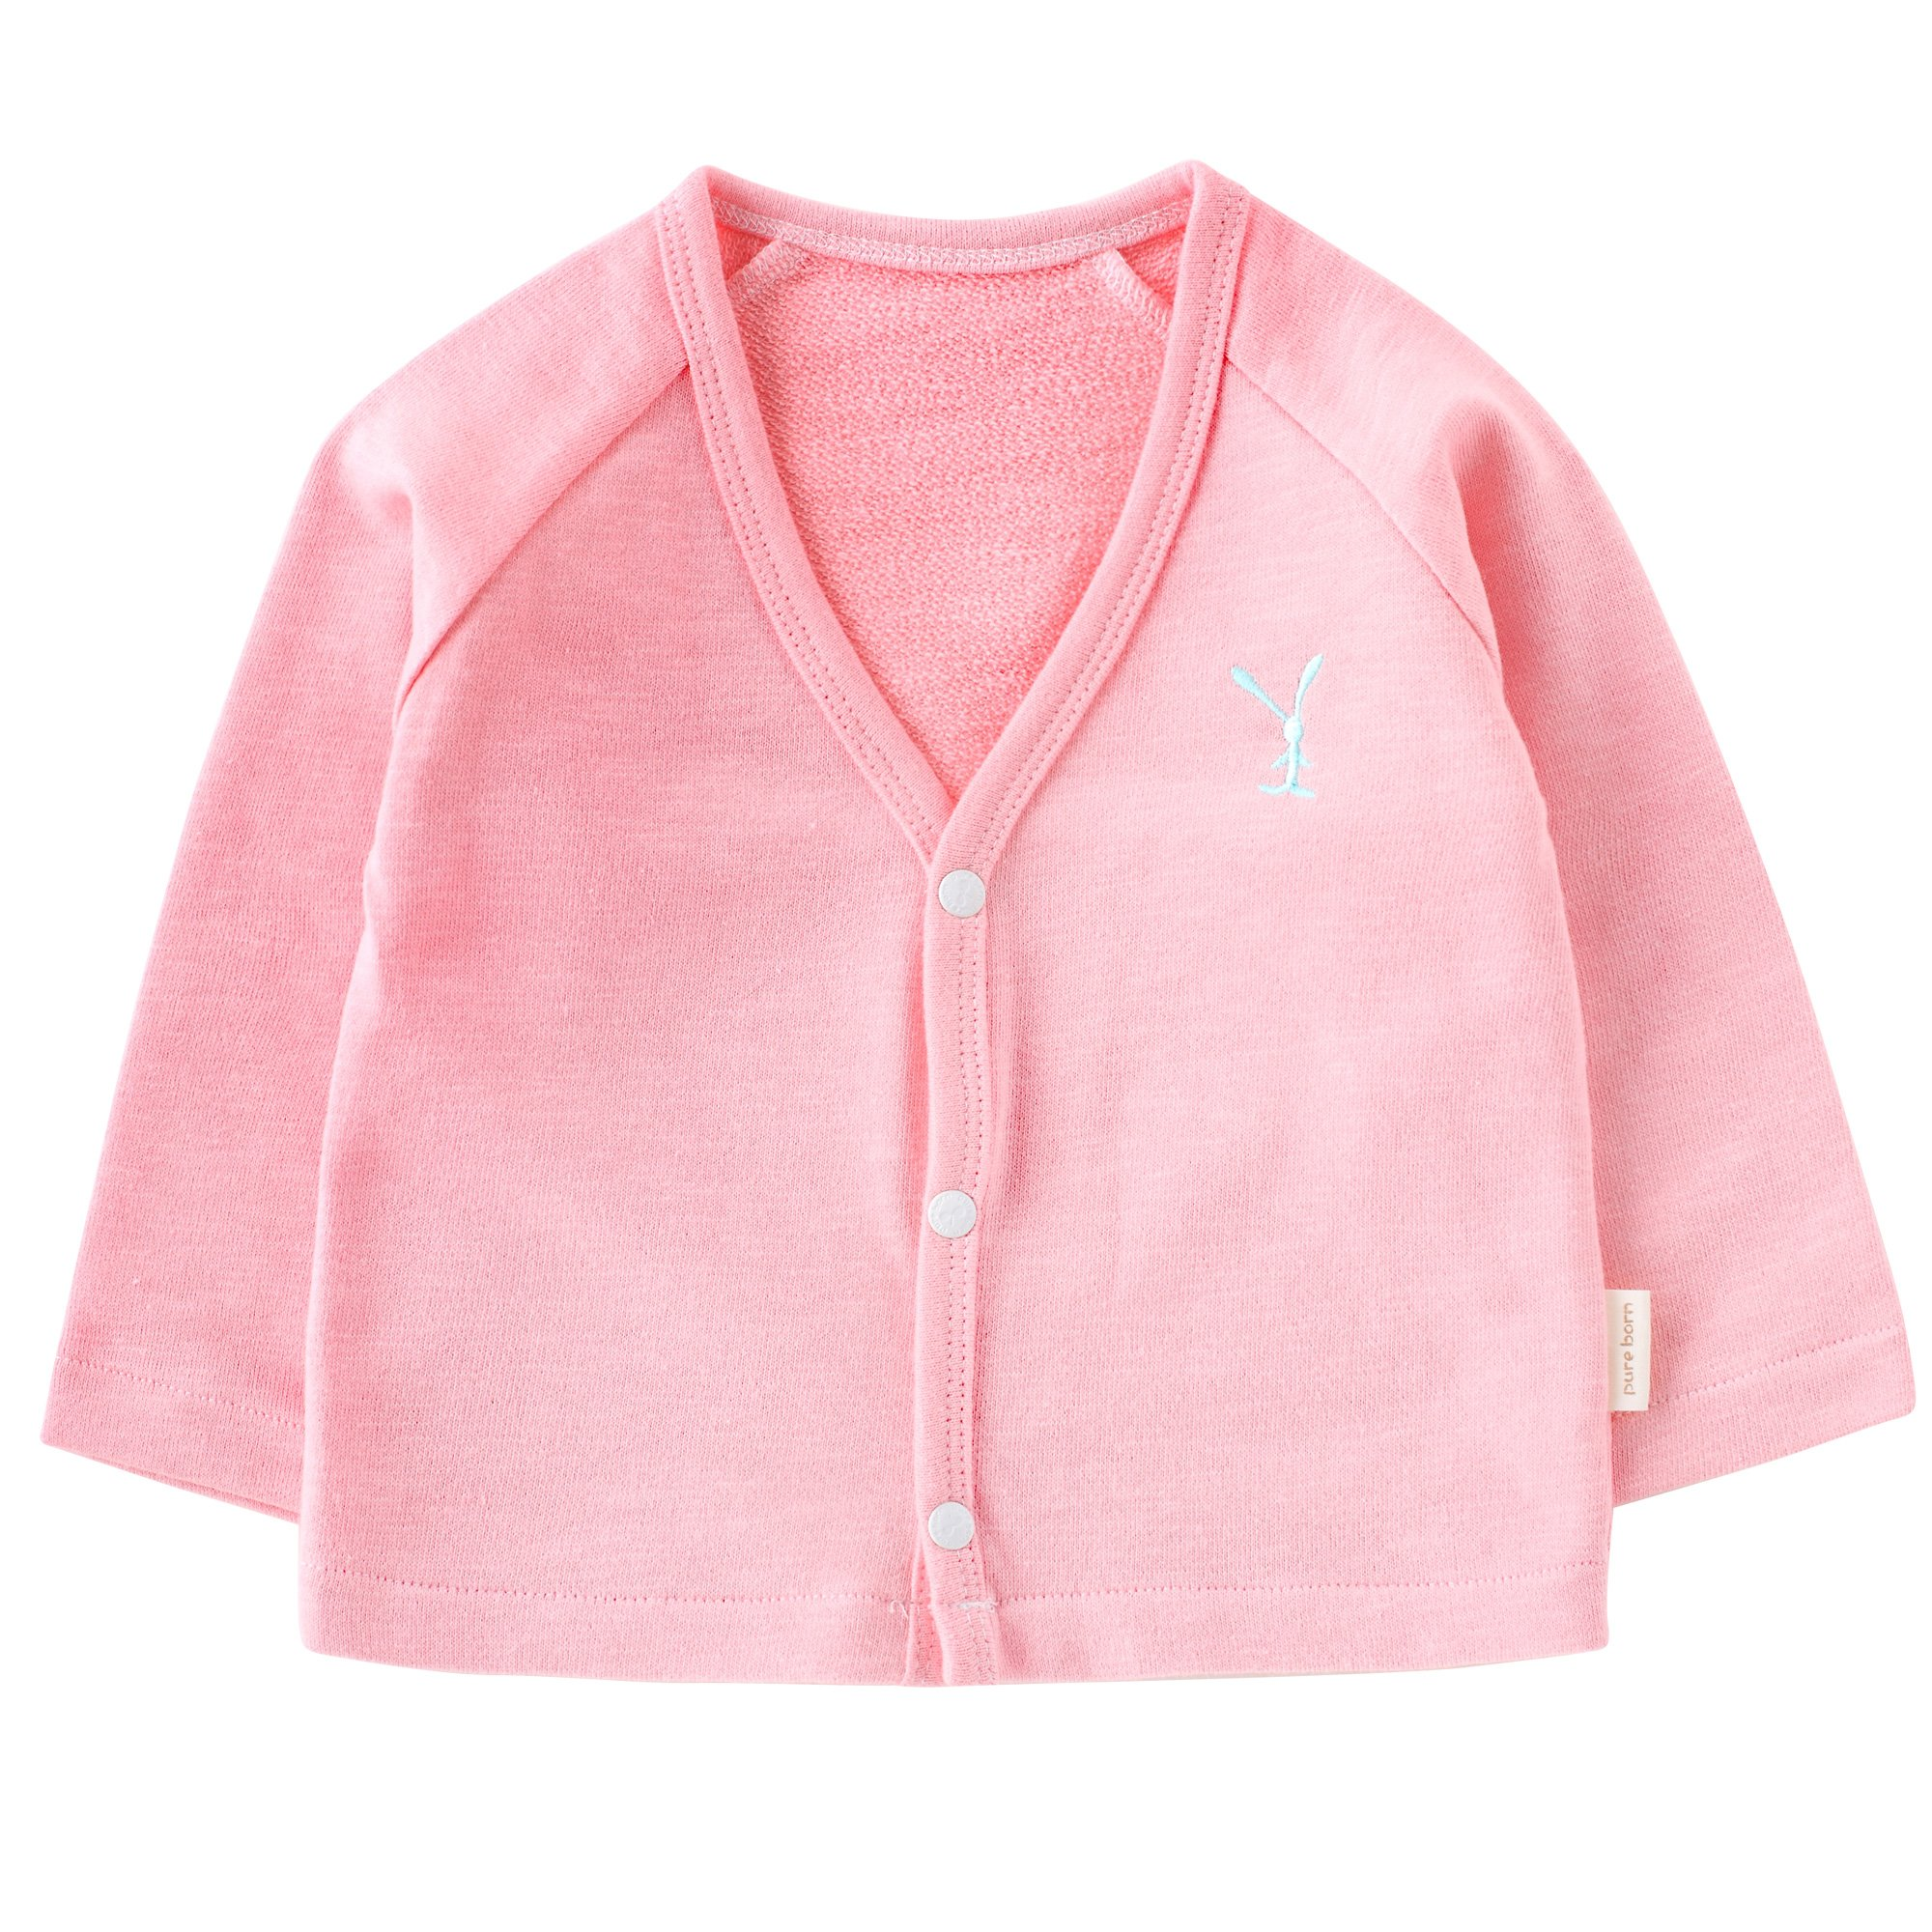 pureborn Baby Girls V-Neck Solid Cardigan Sweater Kid Cotton Clothes Coats Outwear Autumn Pink 3-6 Months